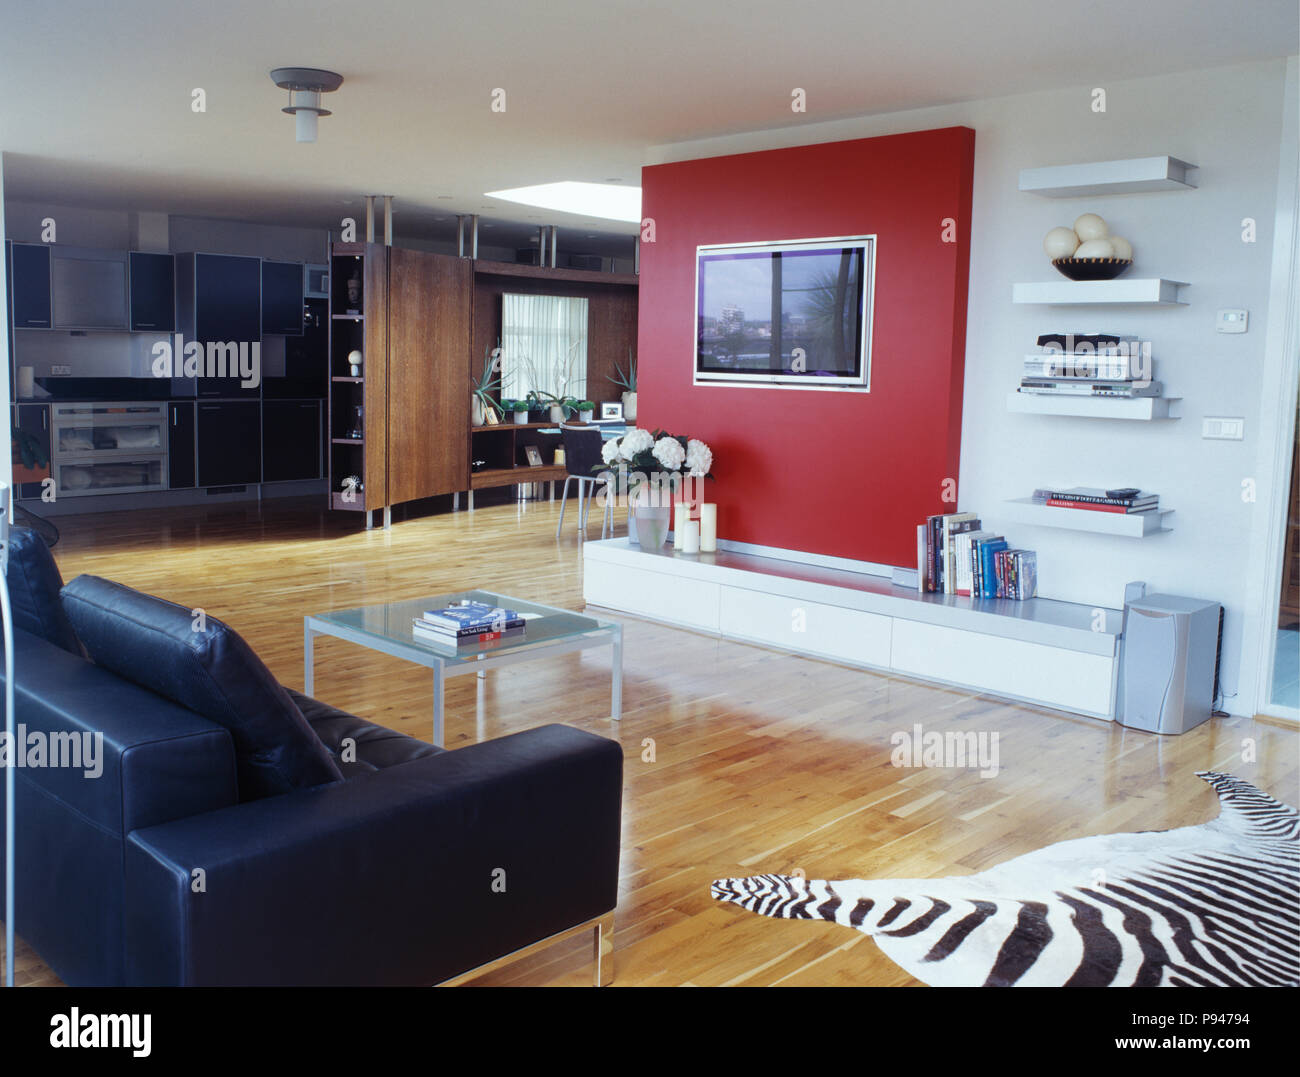 Marvelous Black Leather Sofa And Wooden Flooring In Large Open Plan Beatyapartments Chair Design Images Beatyapartmentscom